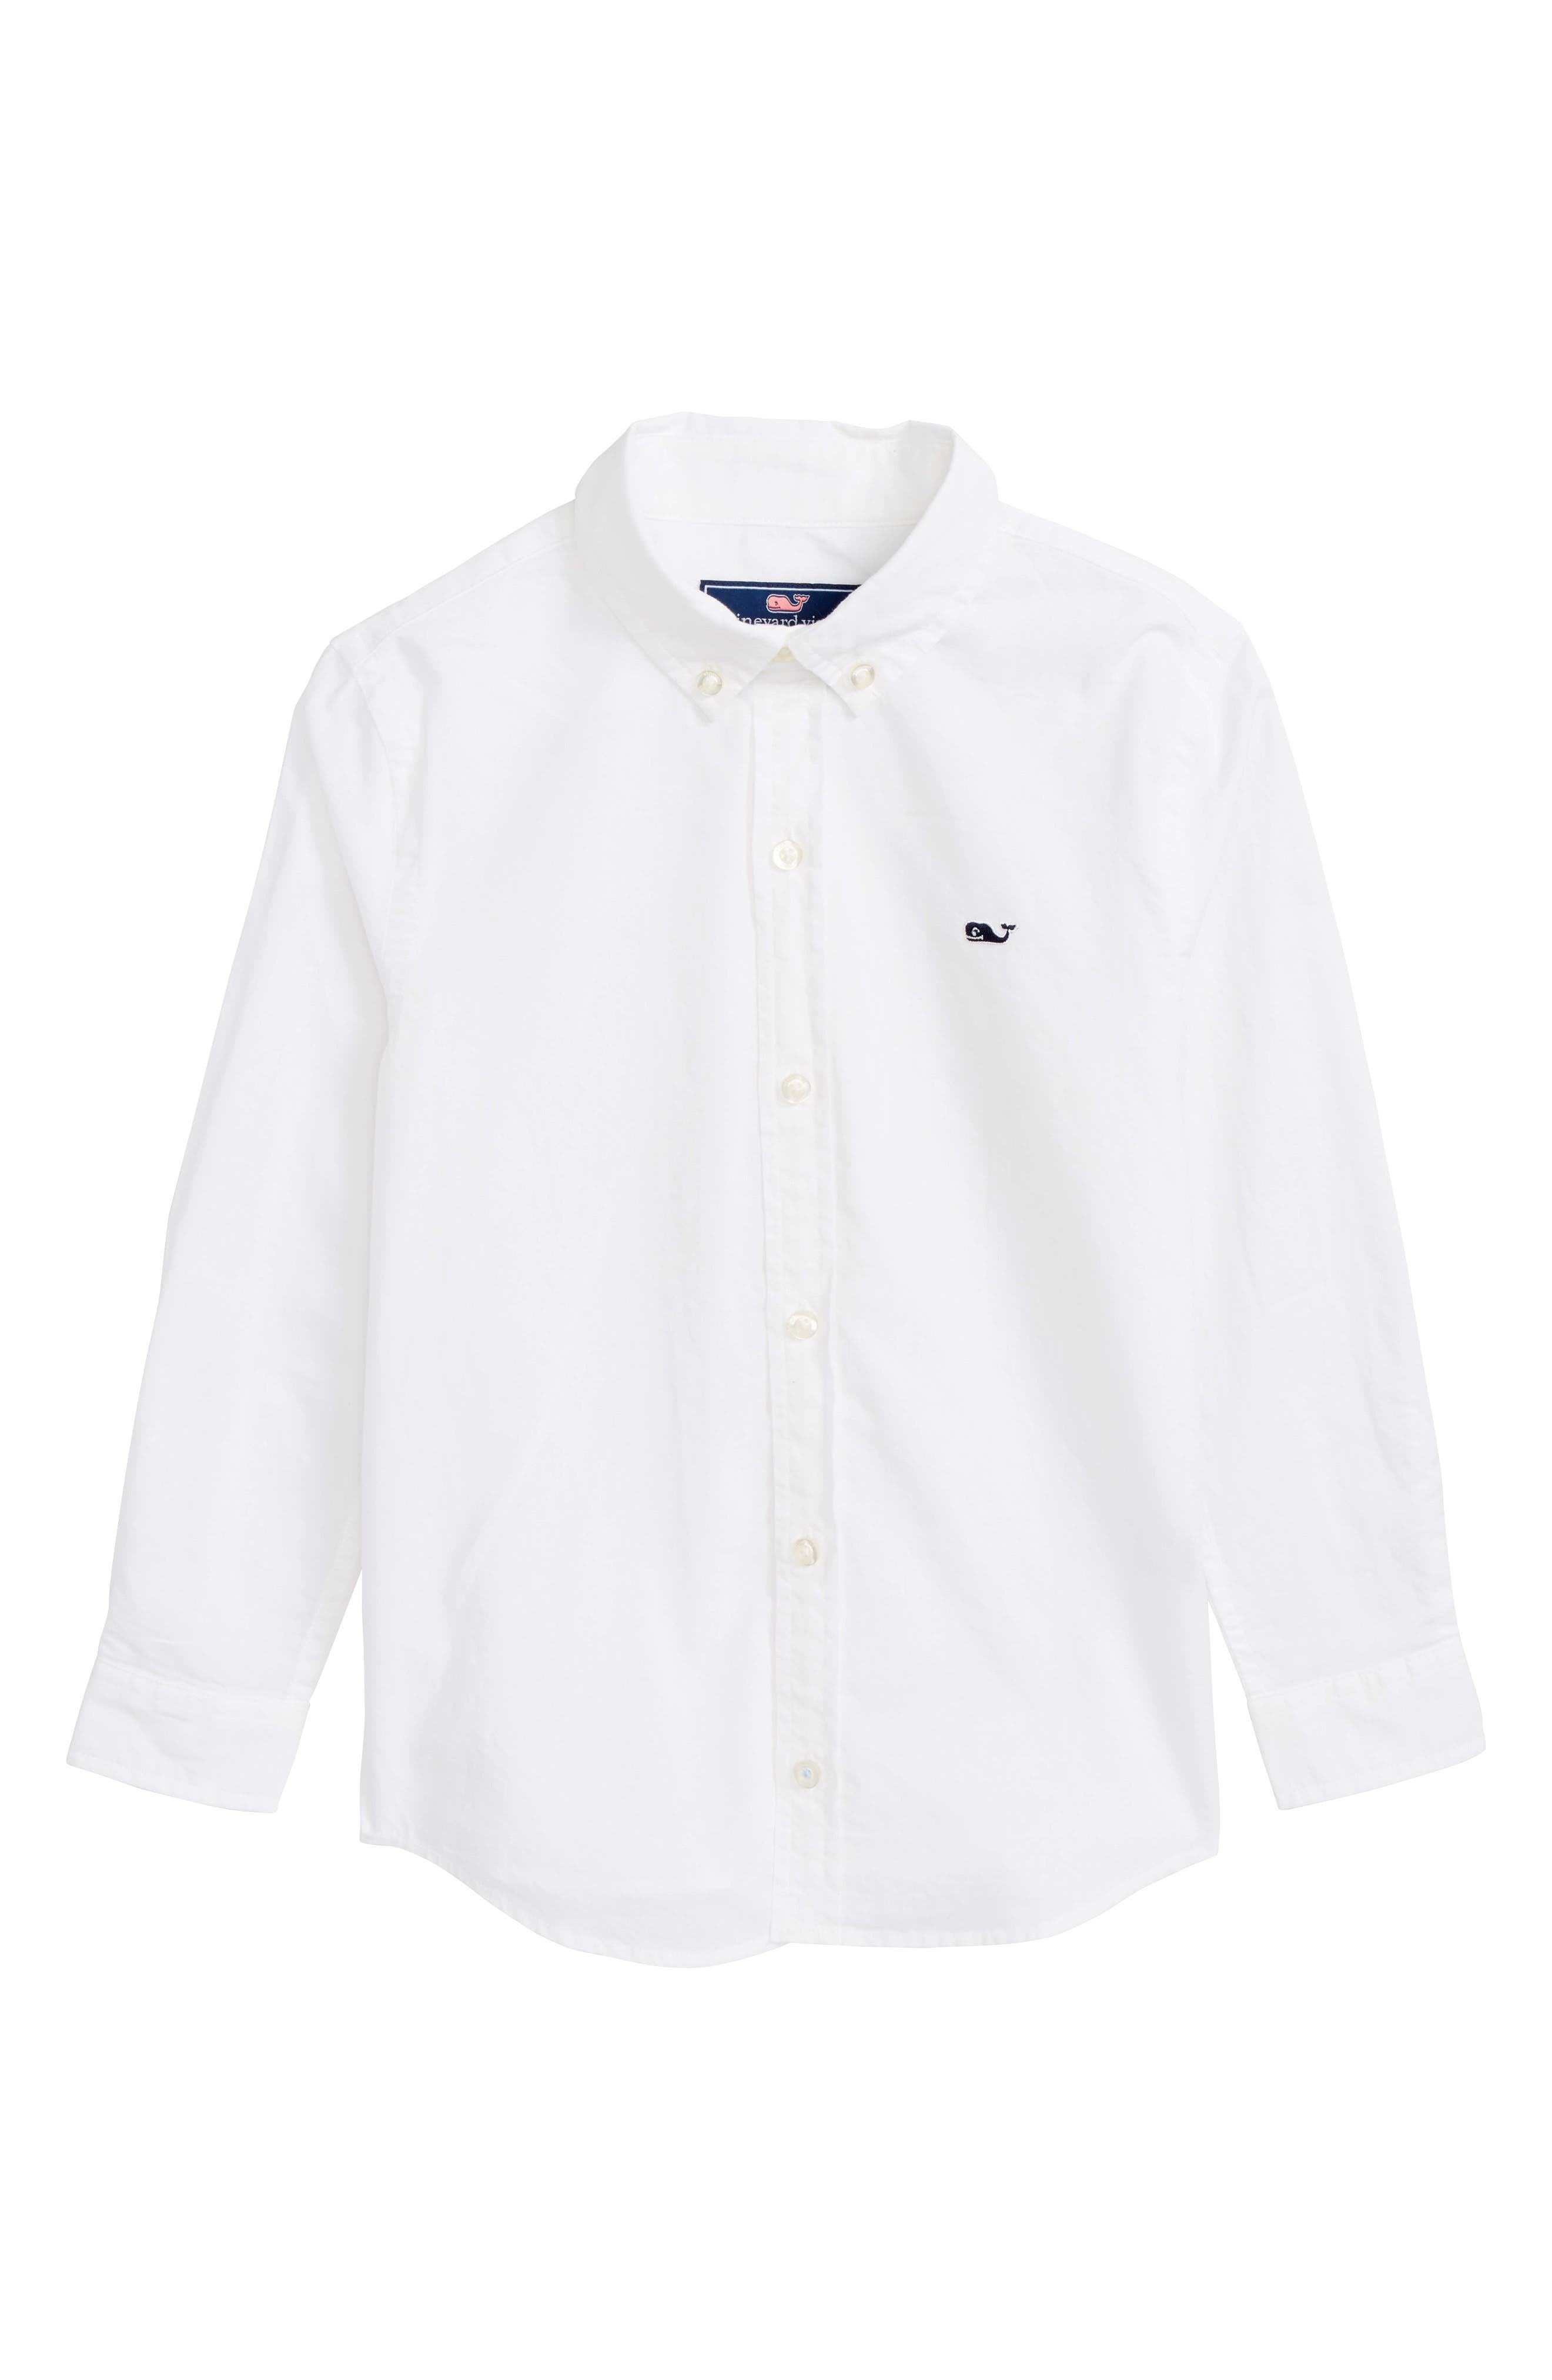 Whale Woven Shirt,                         Main,                         color, 100